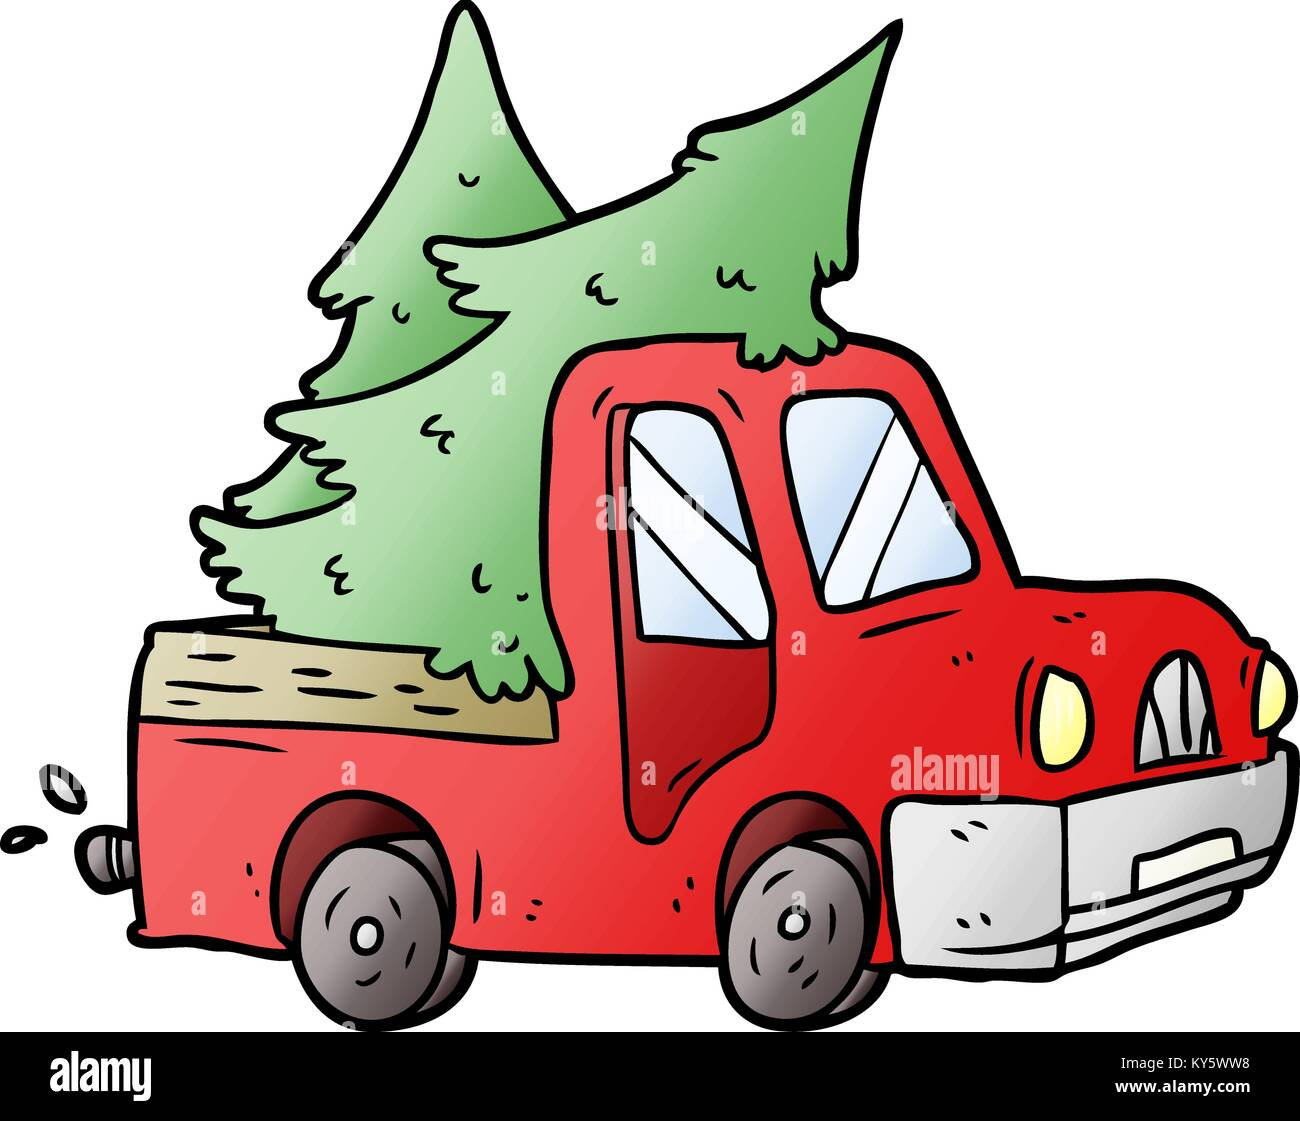 Cartoon Pickup Truck Carrying Christmas Trees Stock Vector Image Art Alamy Shapes needed to draw a cartoon tree and how to add detail to your tree to make it look more realistic; https www alamy com stock photo cartoon pickup truck carrying christmas trees 171619092 html